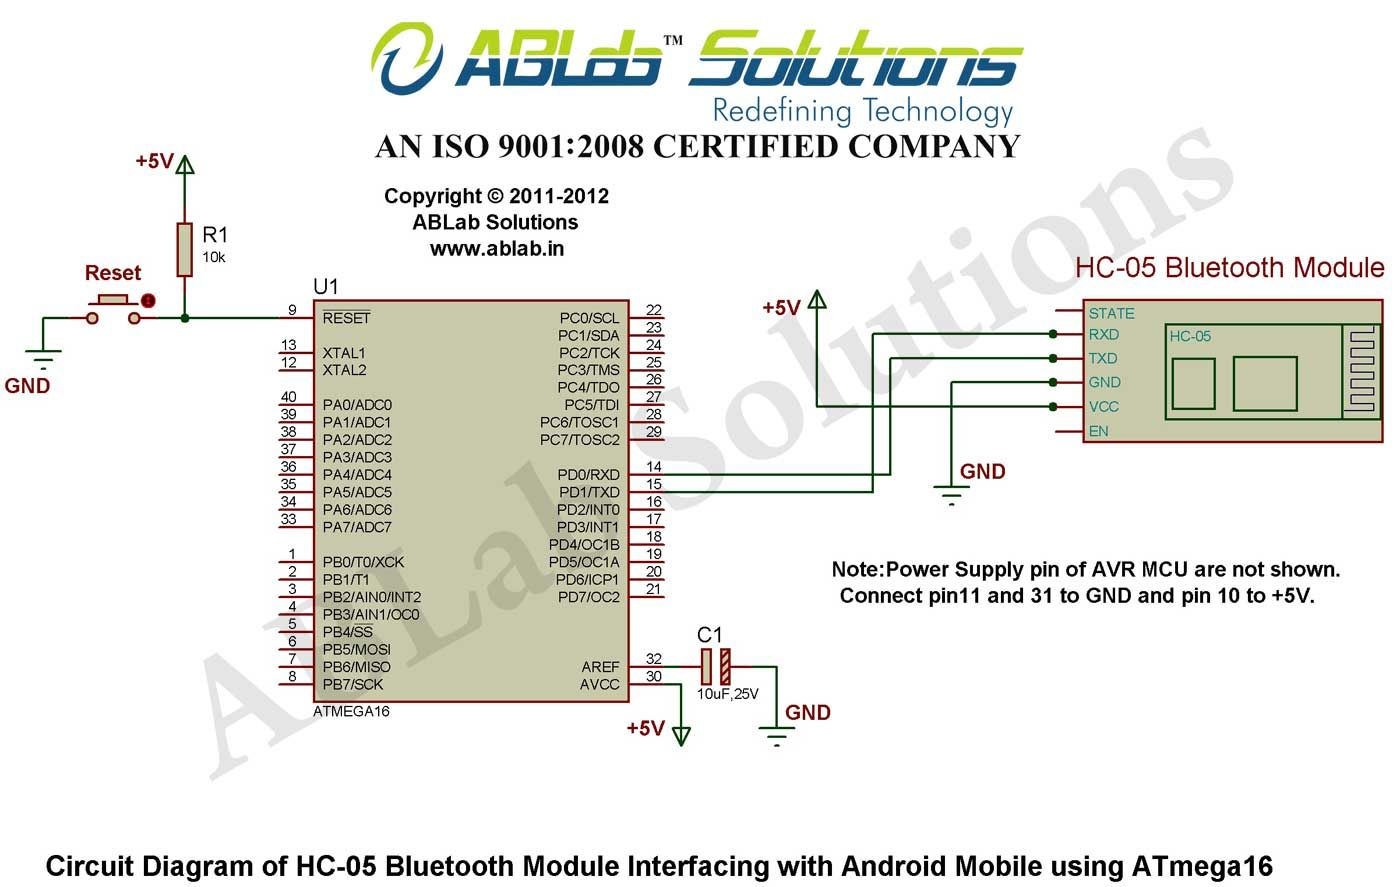 How to interface a HC-05 Bluetooth Module with an Android Mobile using AVR  ATmega16 microcontroller | Microcontrollers, Circuit diagram, InterfacePinterest